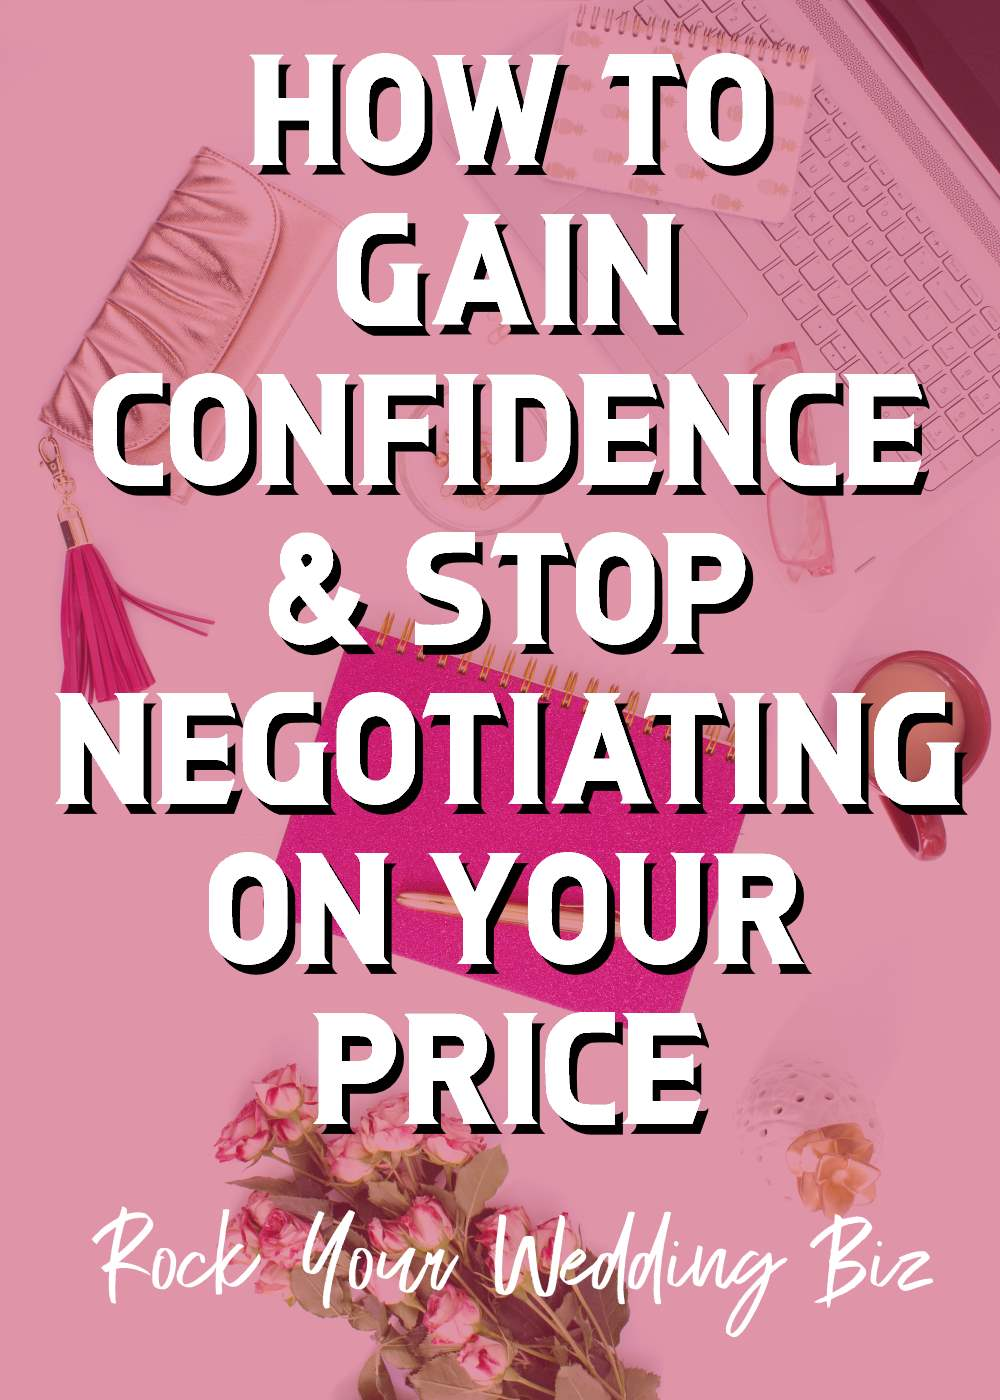 Episode 34 - How to Stop Negotiating Your Price with Maria Bayer